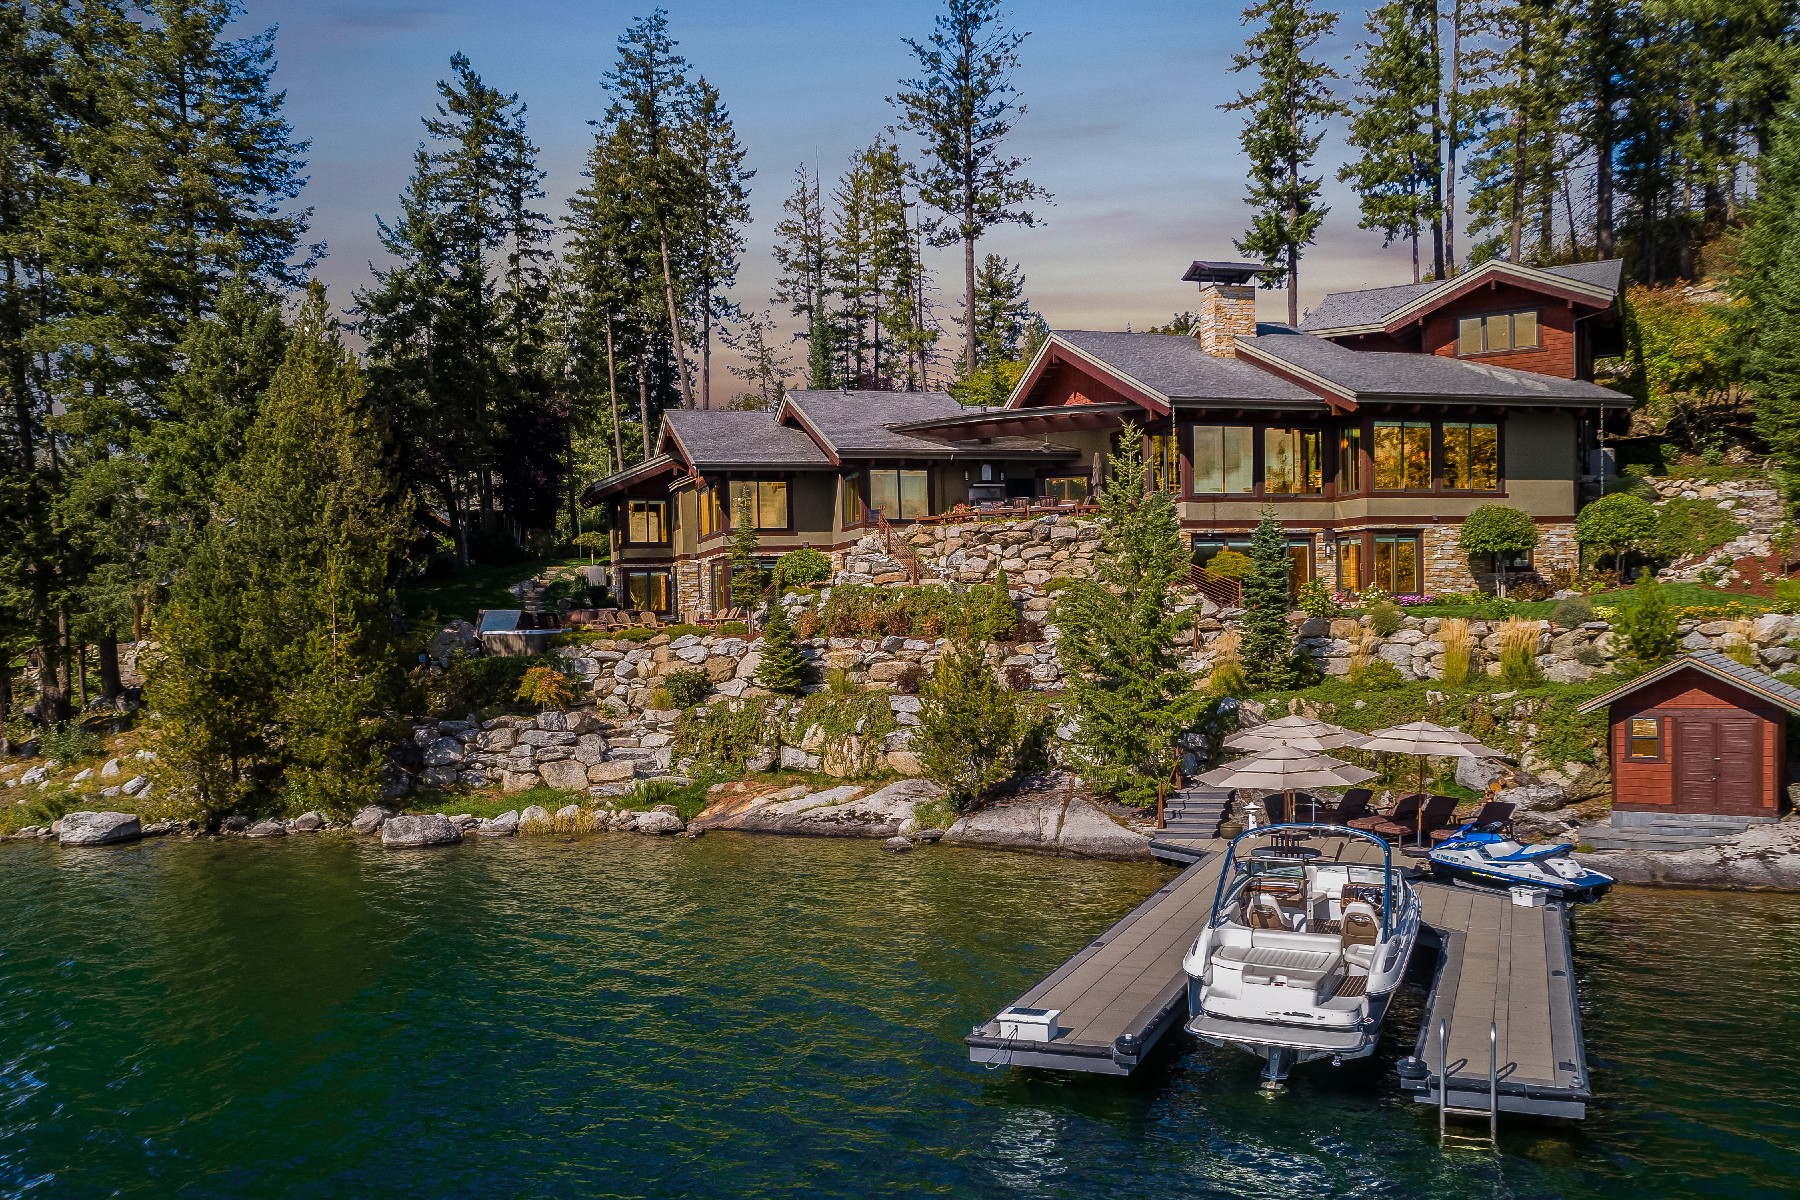 Single Family Homes for Sale at Dover Point Waterfront Estate 203 Shannon Lane Dover, Idaho 83825 United States